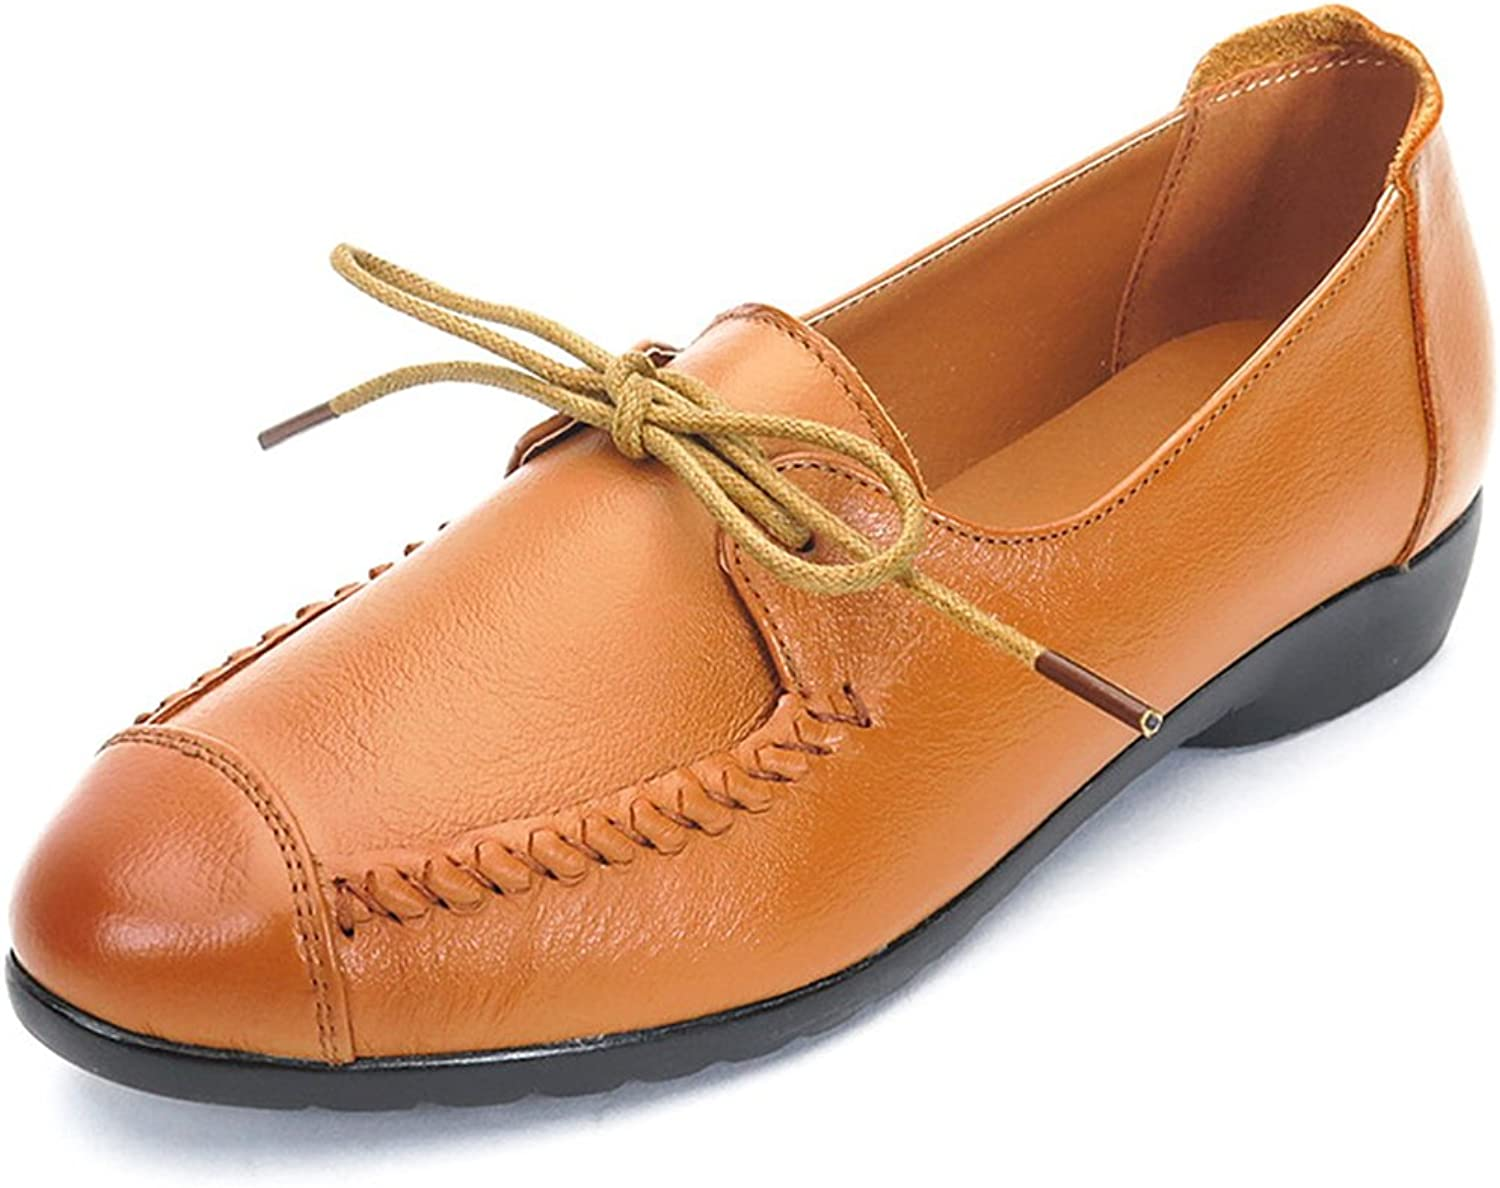 GilesJones Oxford Flats shoes Women,Casual British Moccasins Lace up Loafers shoes